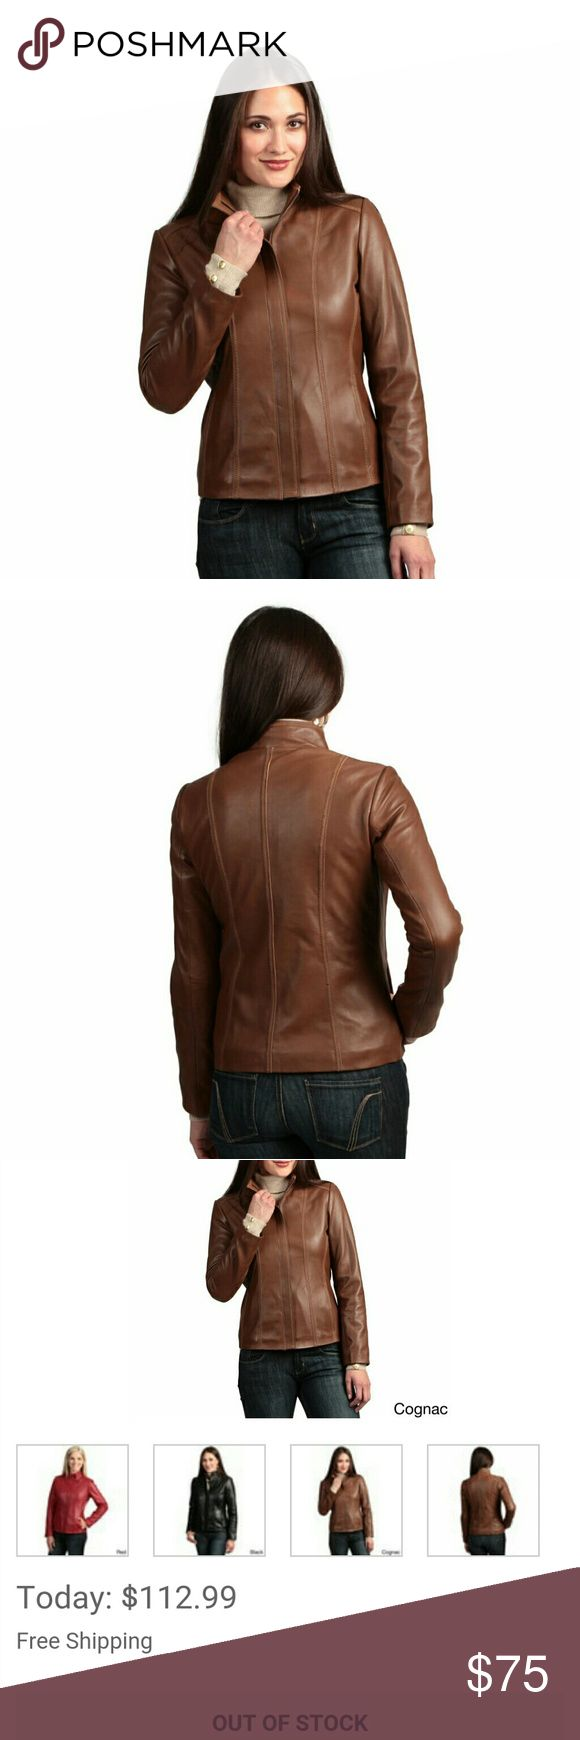 NWOT Genuine lambskin leather jacket cognac color Nwot, never worn.  Paid $125 when I got it b4 it sold out on Overstock for $113.  Perfect condition. Soft buttery leather, the color is cognac, which is a beautiful luggage brown ike color.  Please let me know if u want more pics. Price firm unless bundled. colletzione Jackets & Coats